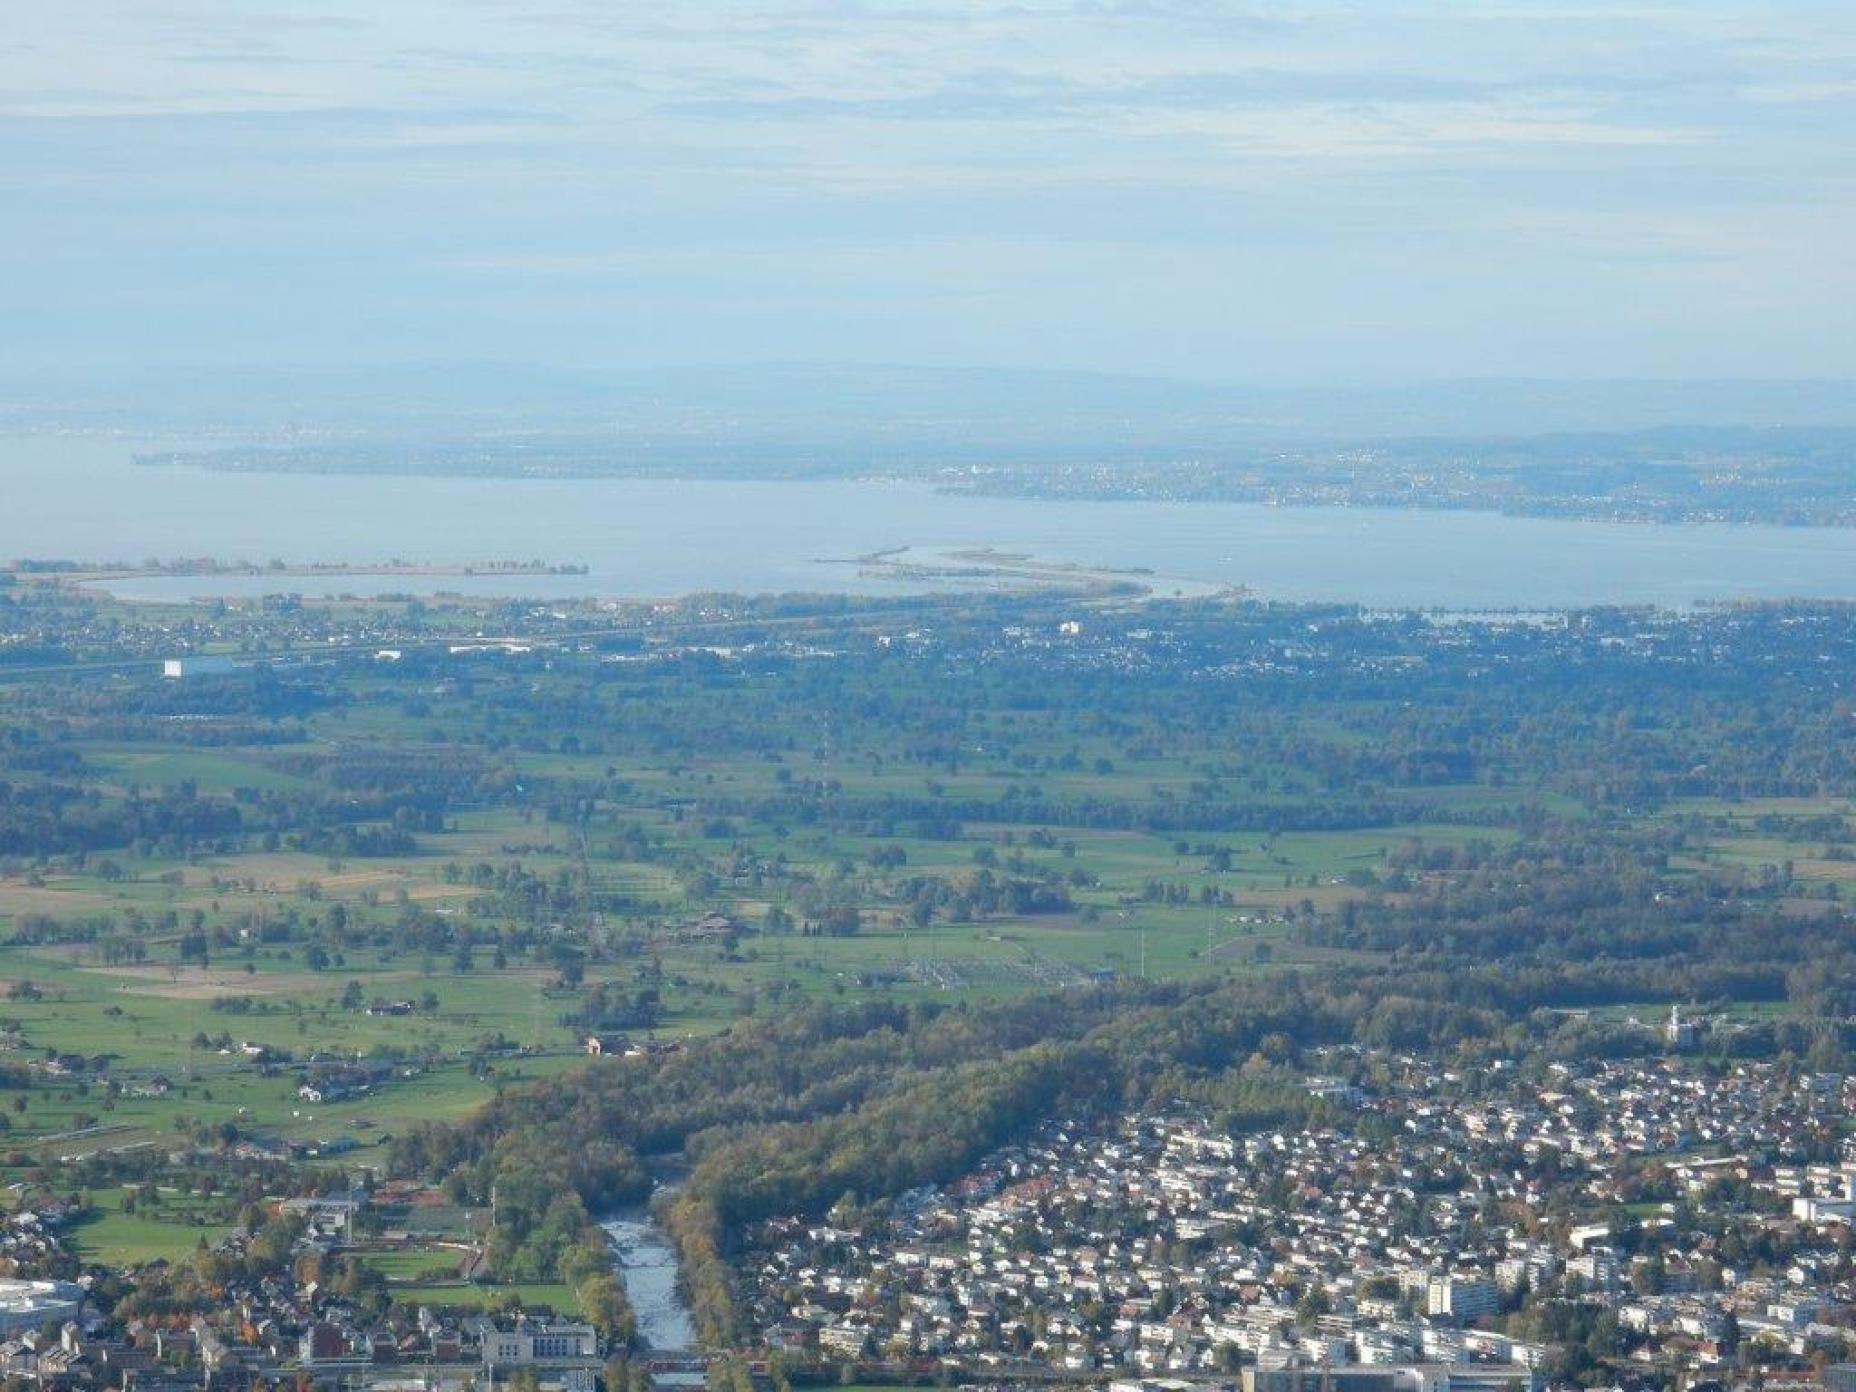 Lake Constance/Bodensee